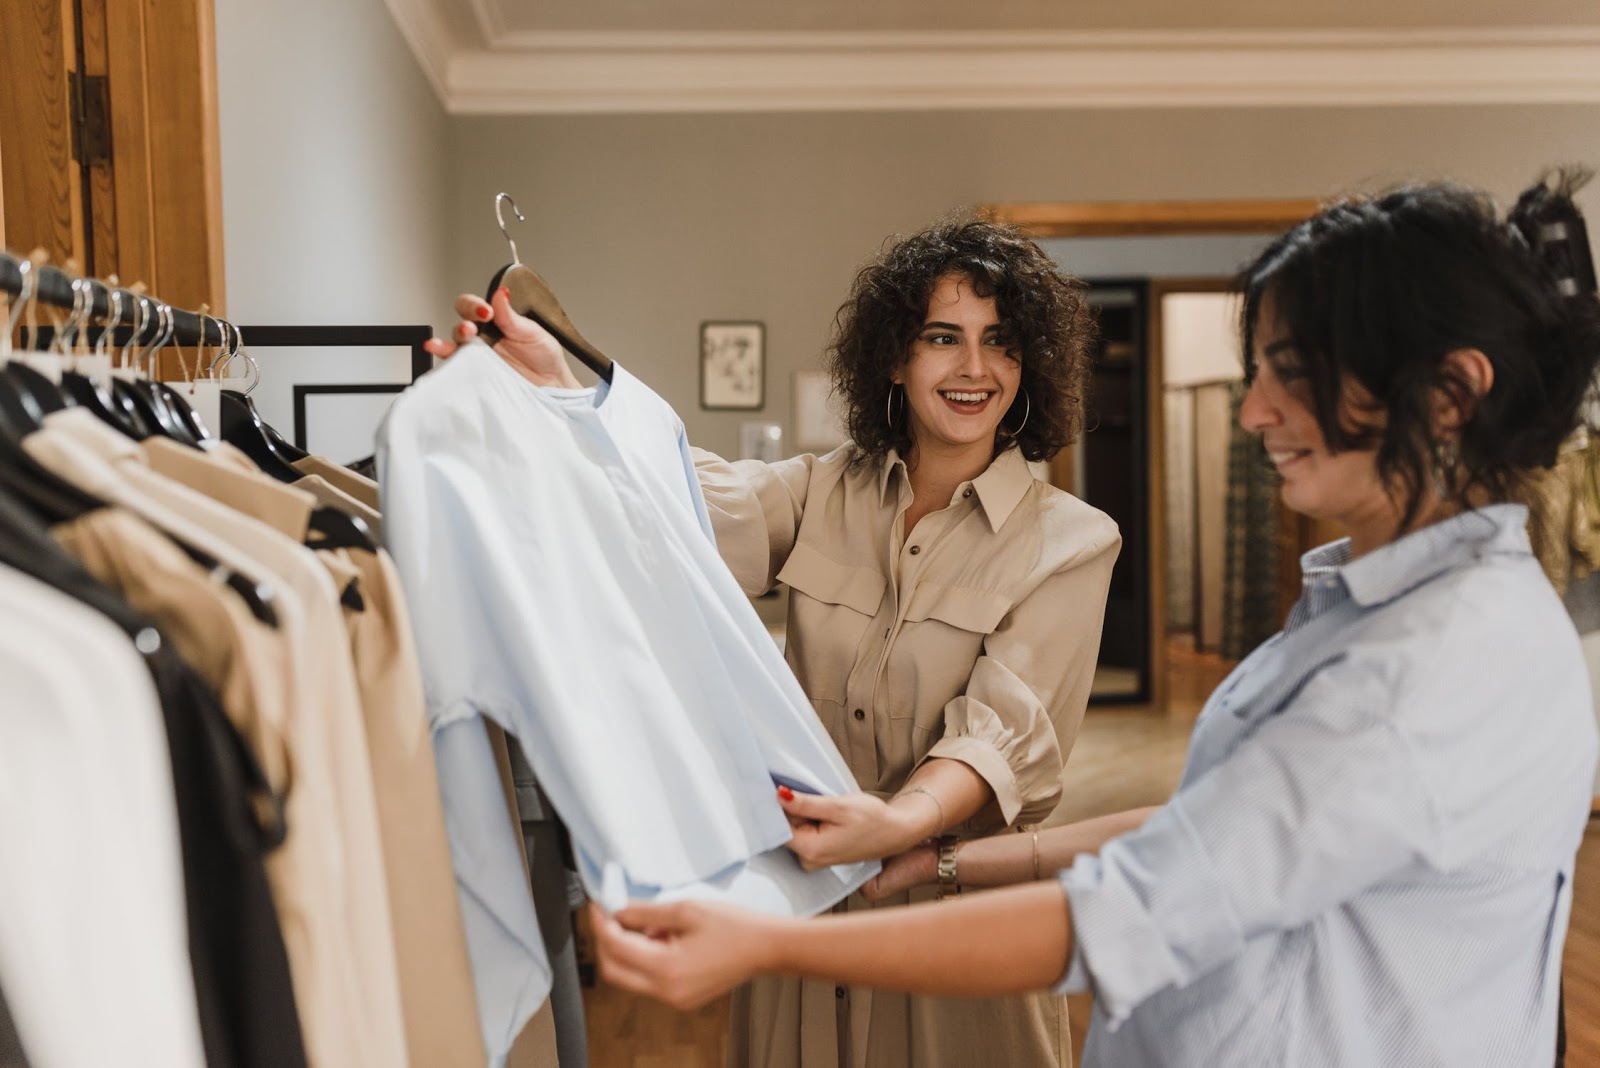 two women in a store looking at a shirt